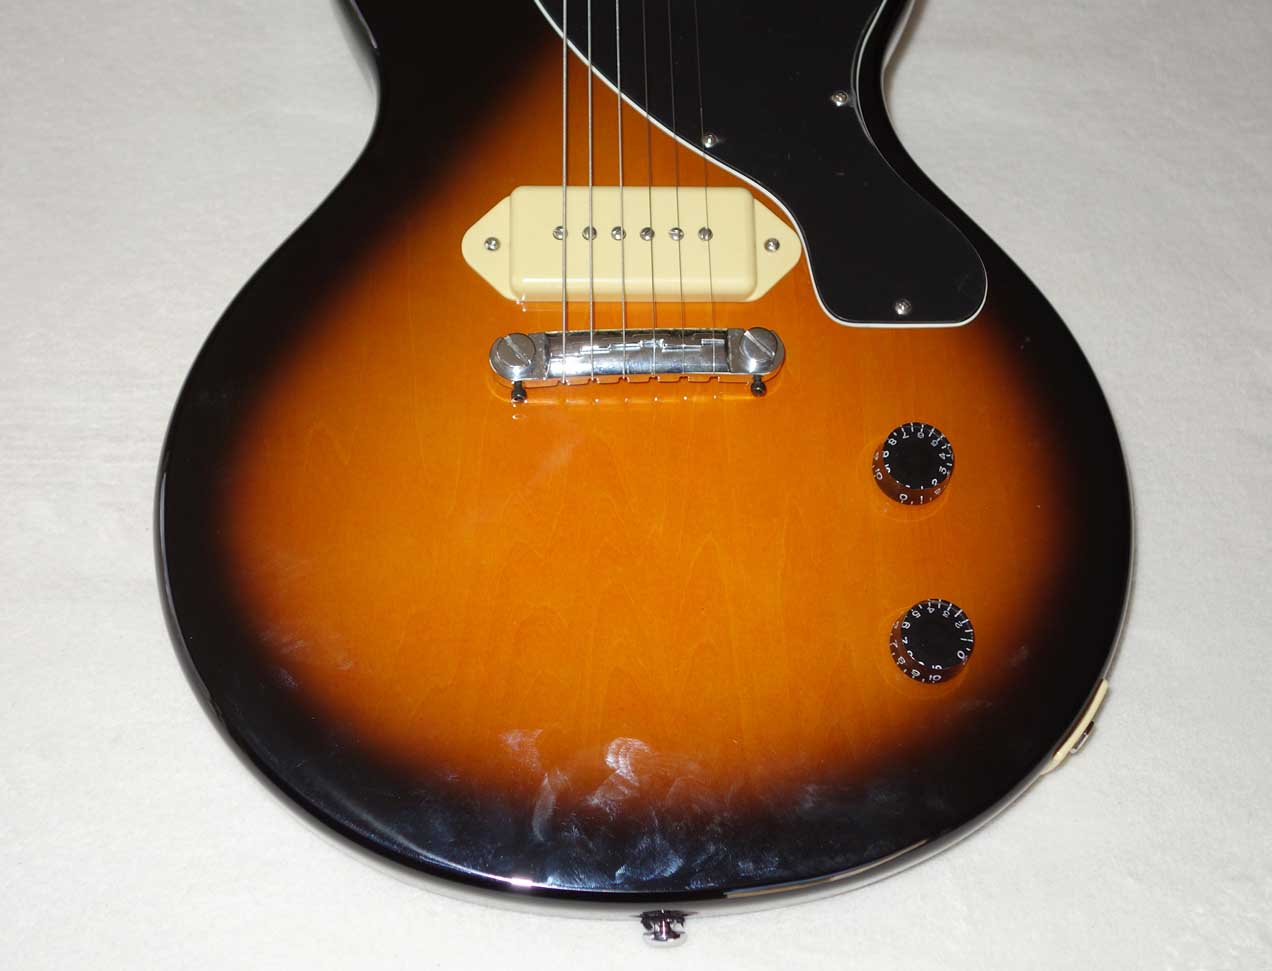 2006 Epi Les Paul Junior P90 Sunburst Finish